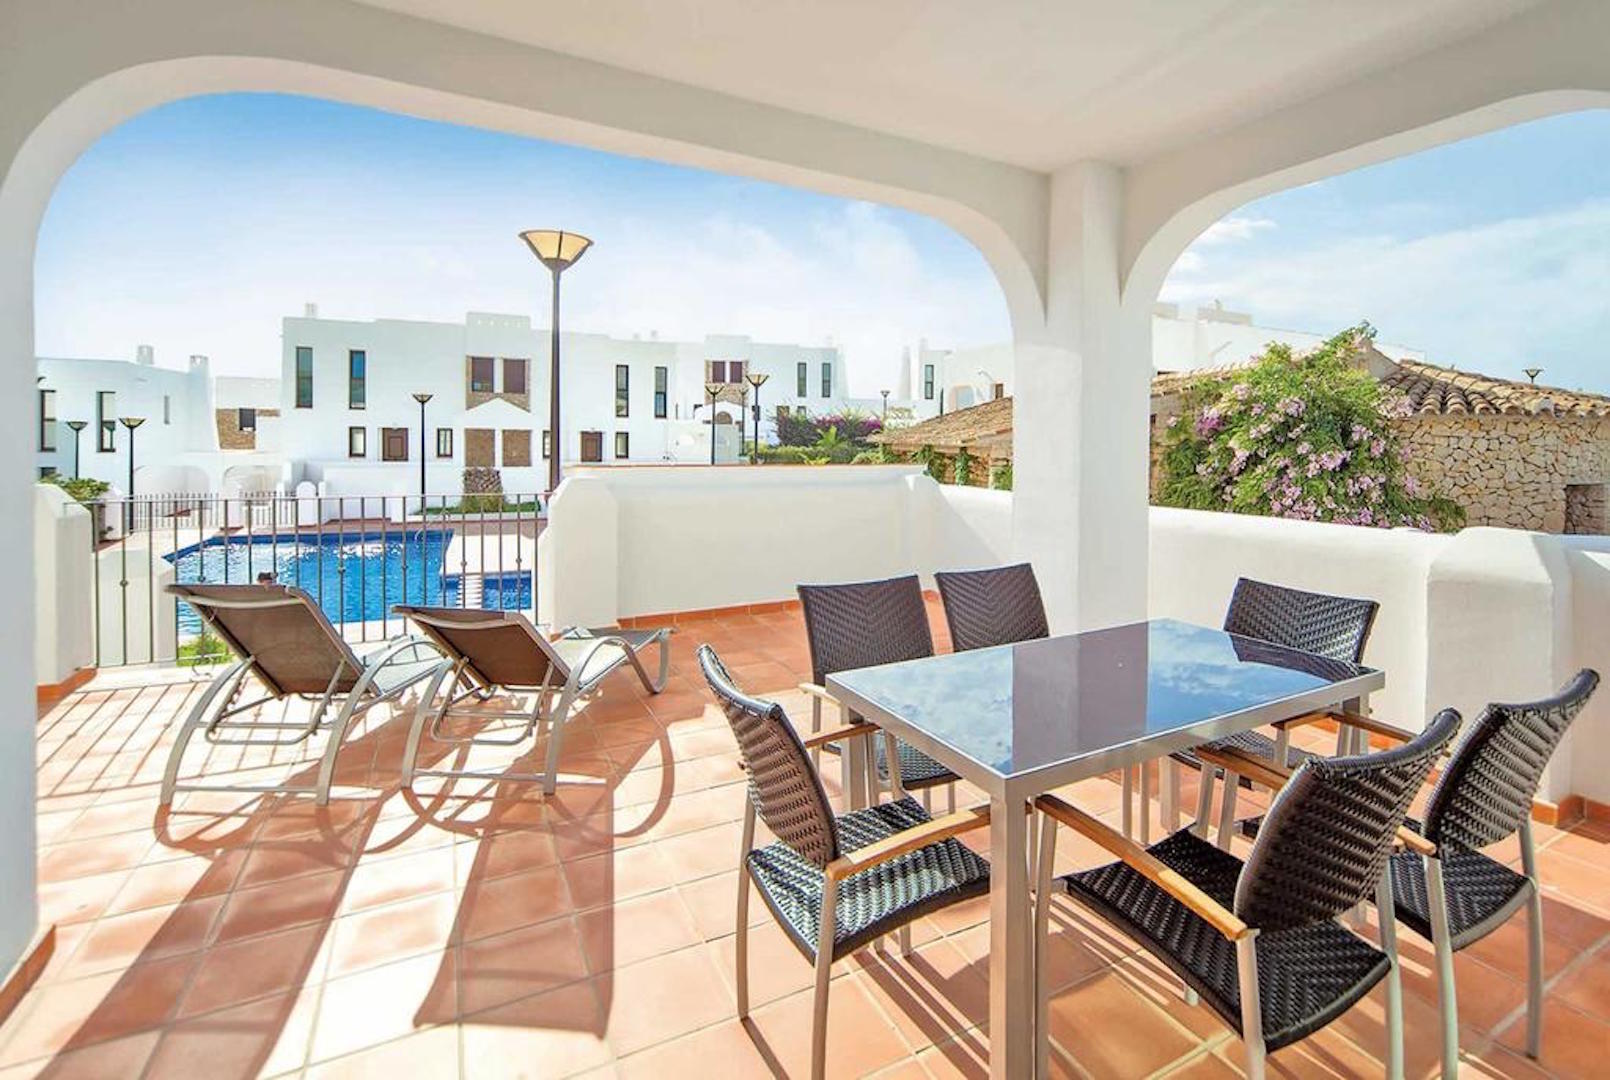 Villa Mirador de Bassetes 4, Villa  with communal pool in Calpe, on the Costa Blanca, Spain for 4 persons...